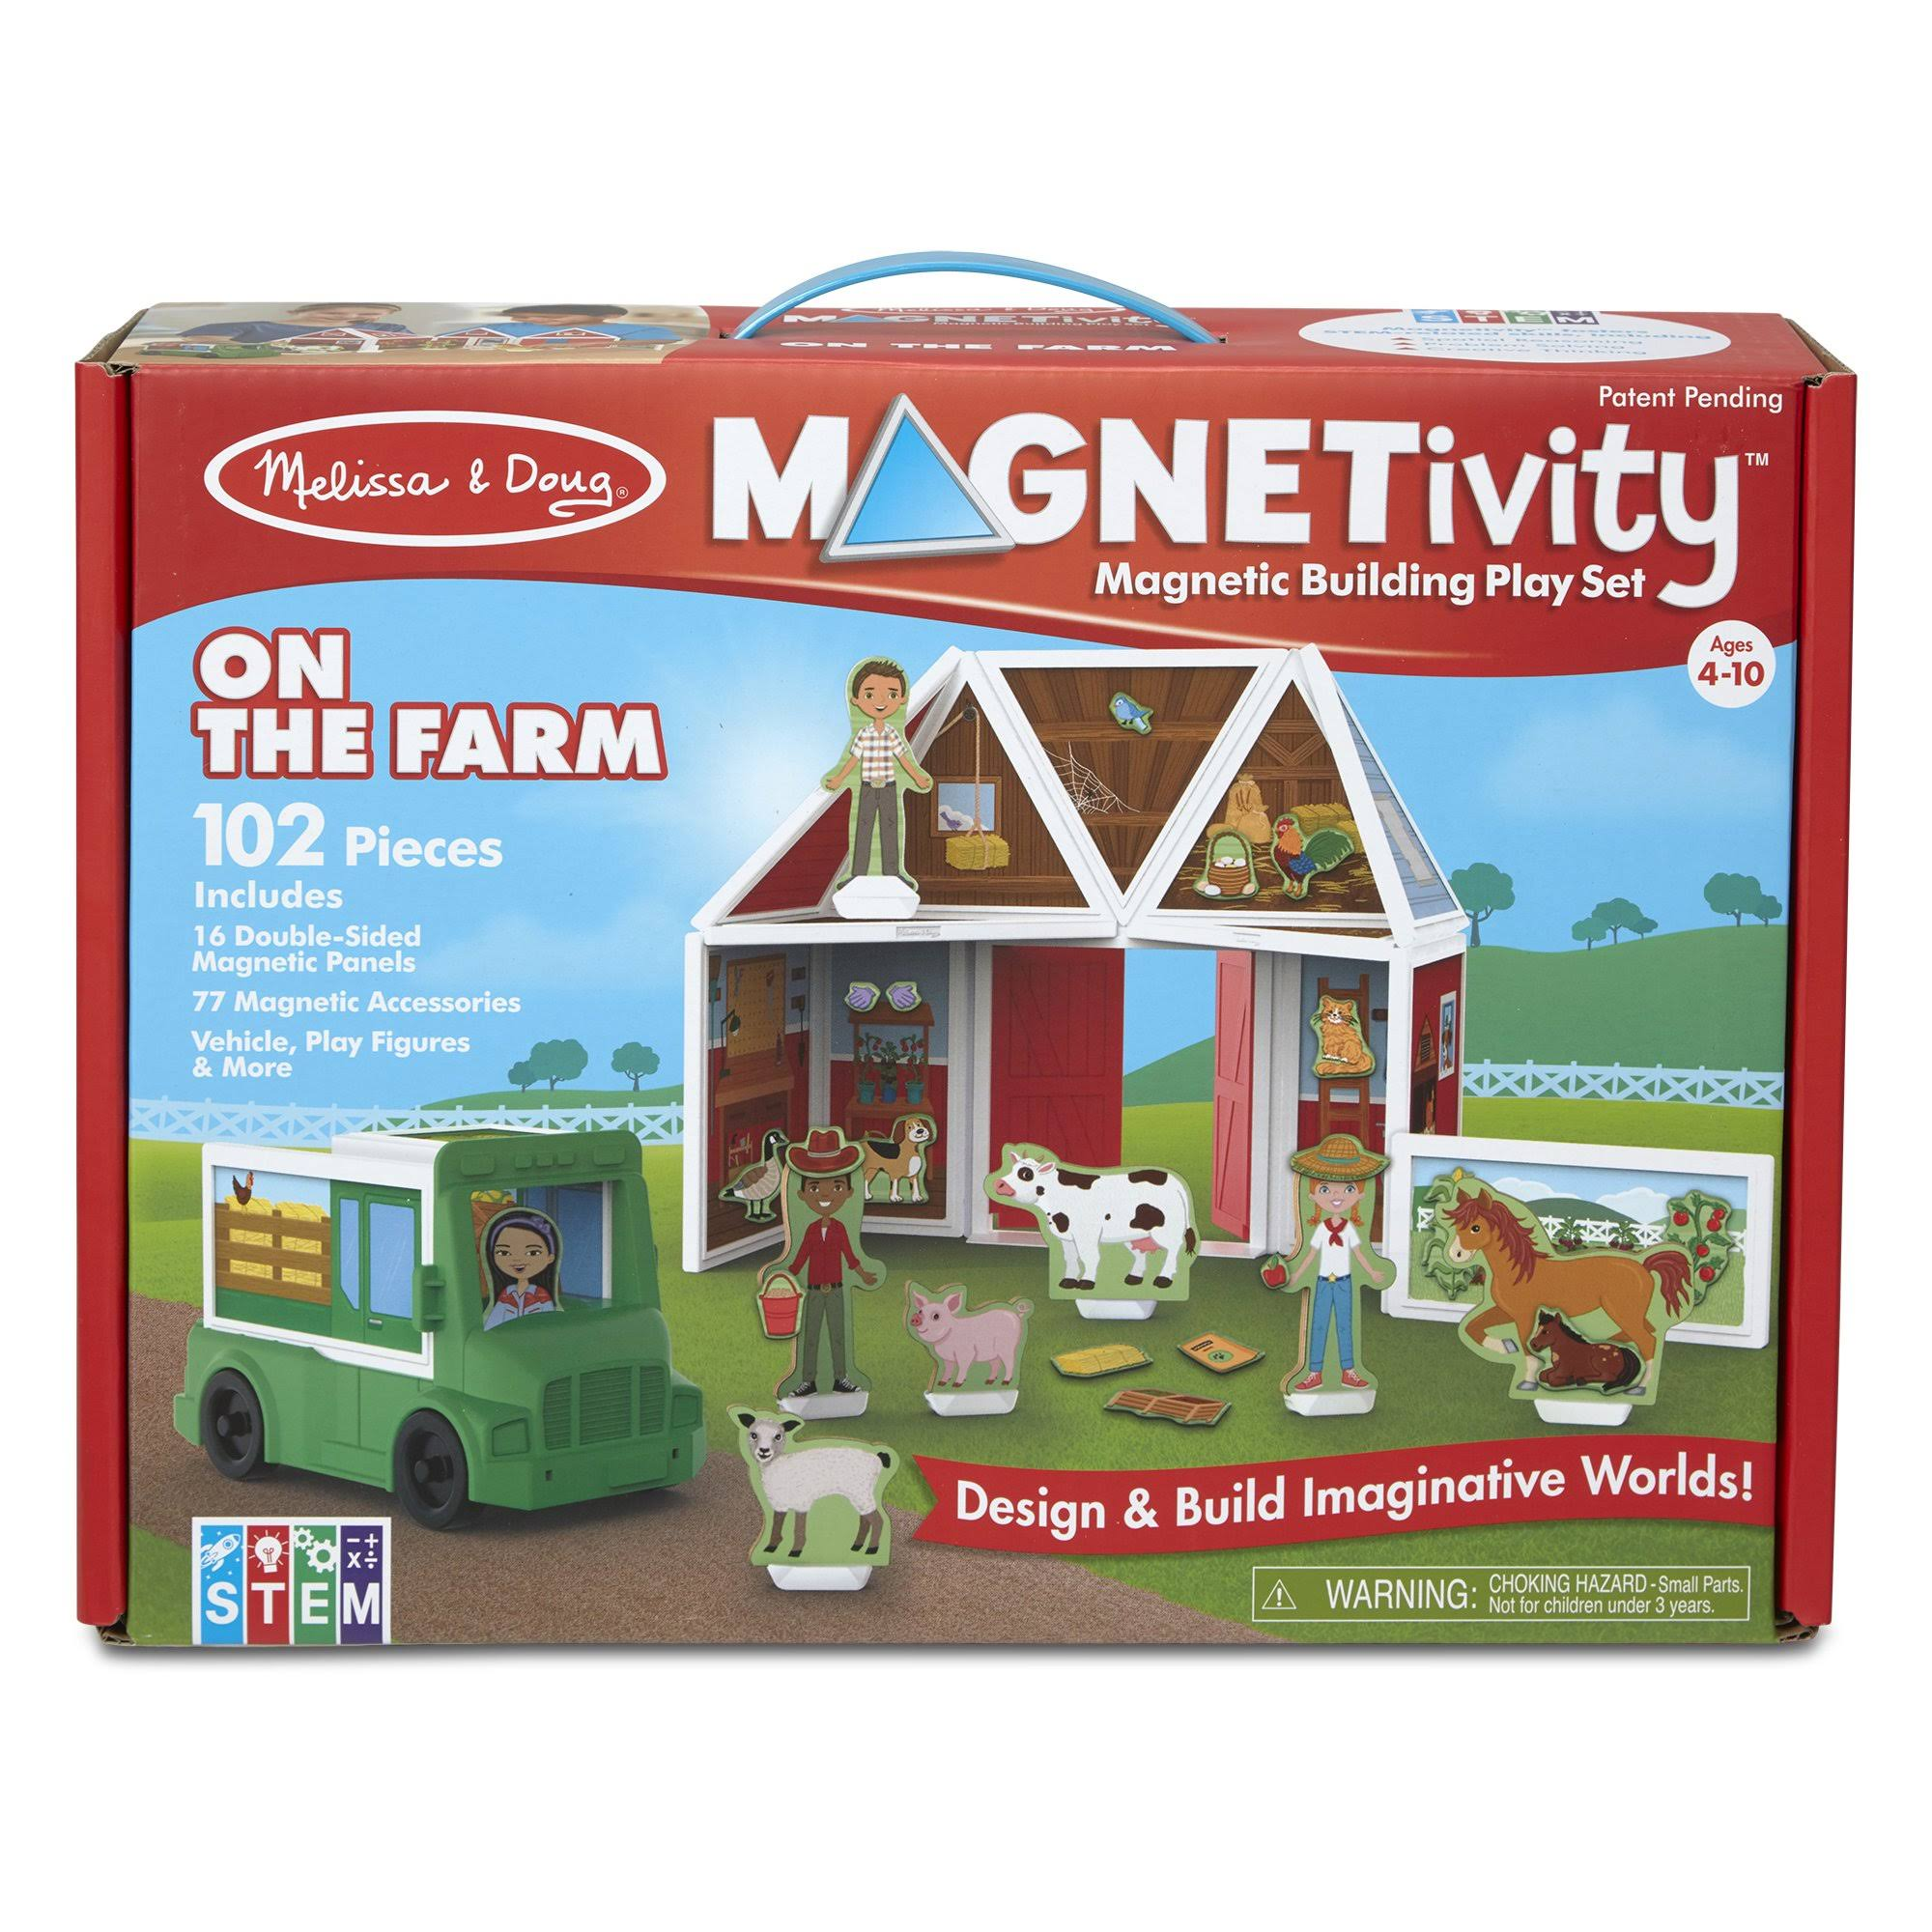 Melissa & Doug Building Play Set on The Farm Magnetivity Magnetic